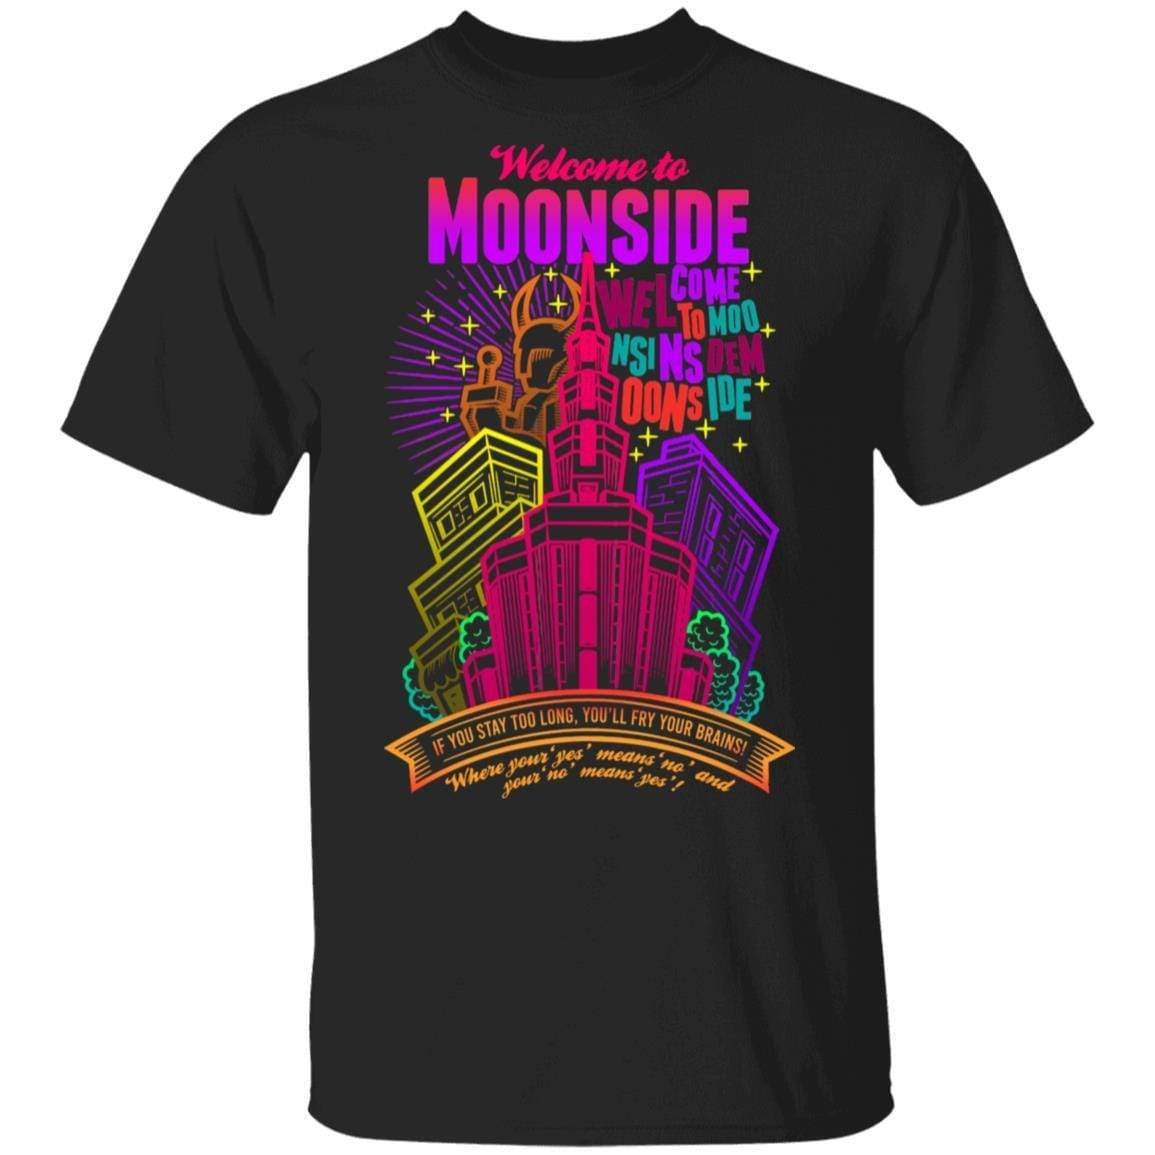 Welcome To Moonside If You Stay Too Long You'll Fry Your Brains T-Shirts, Hoodies 1049-9953-88445012-48144 - Tee Ript